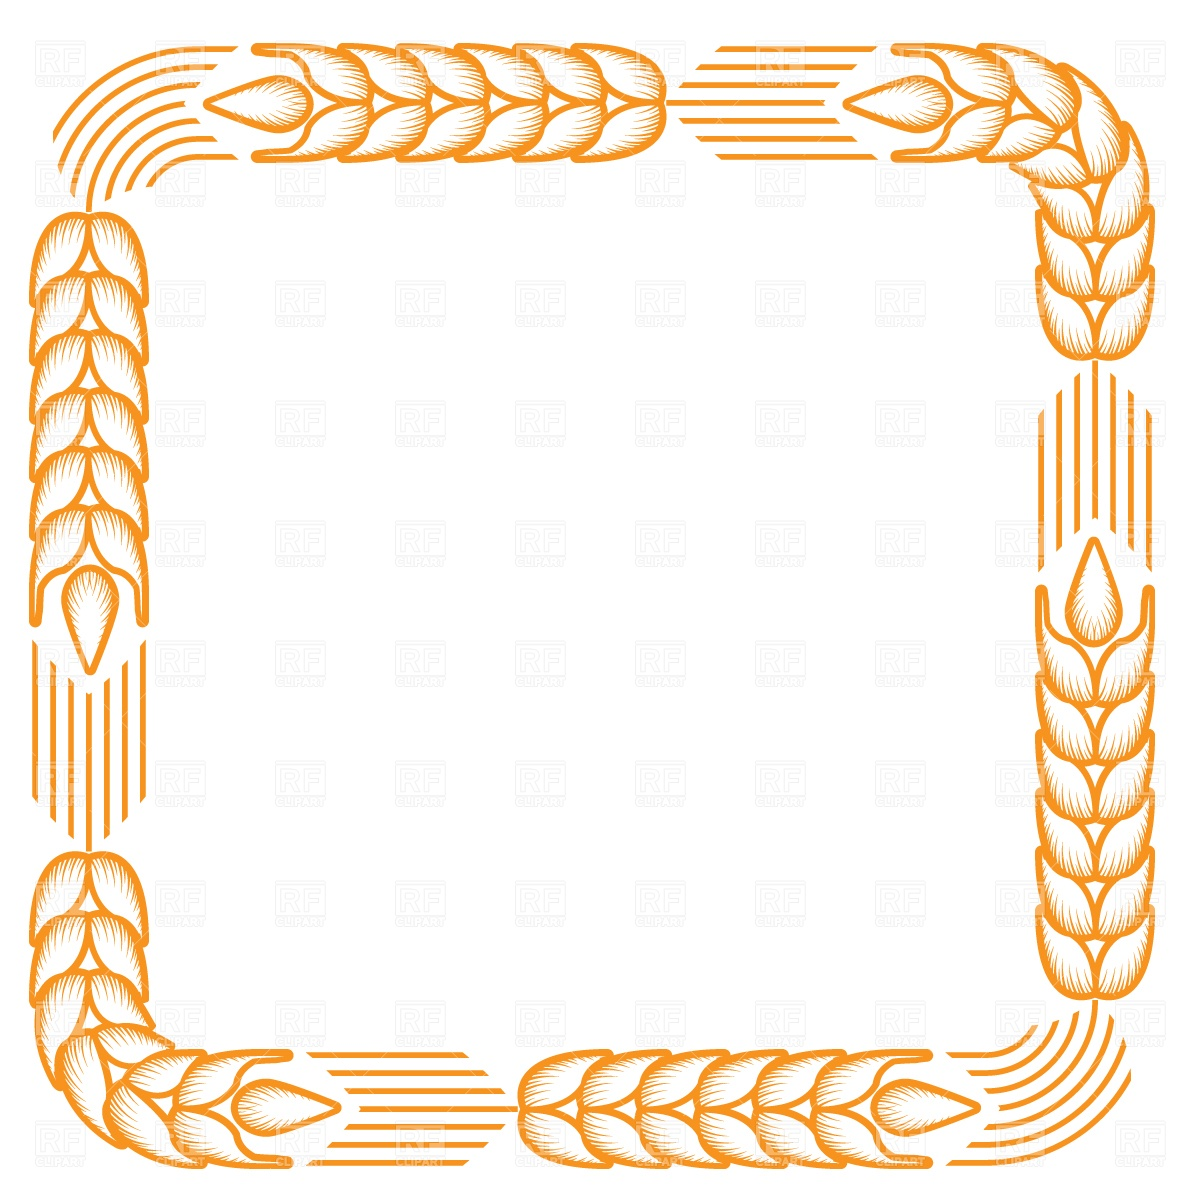 Wheat Border Clipart Images   Pictures   Becuo